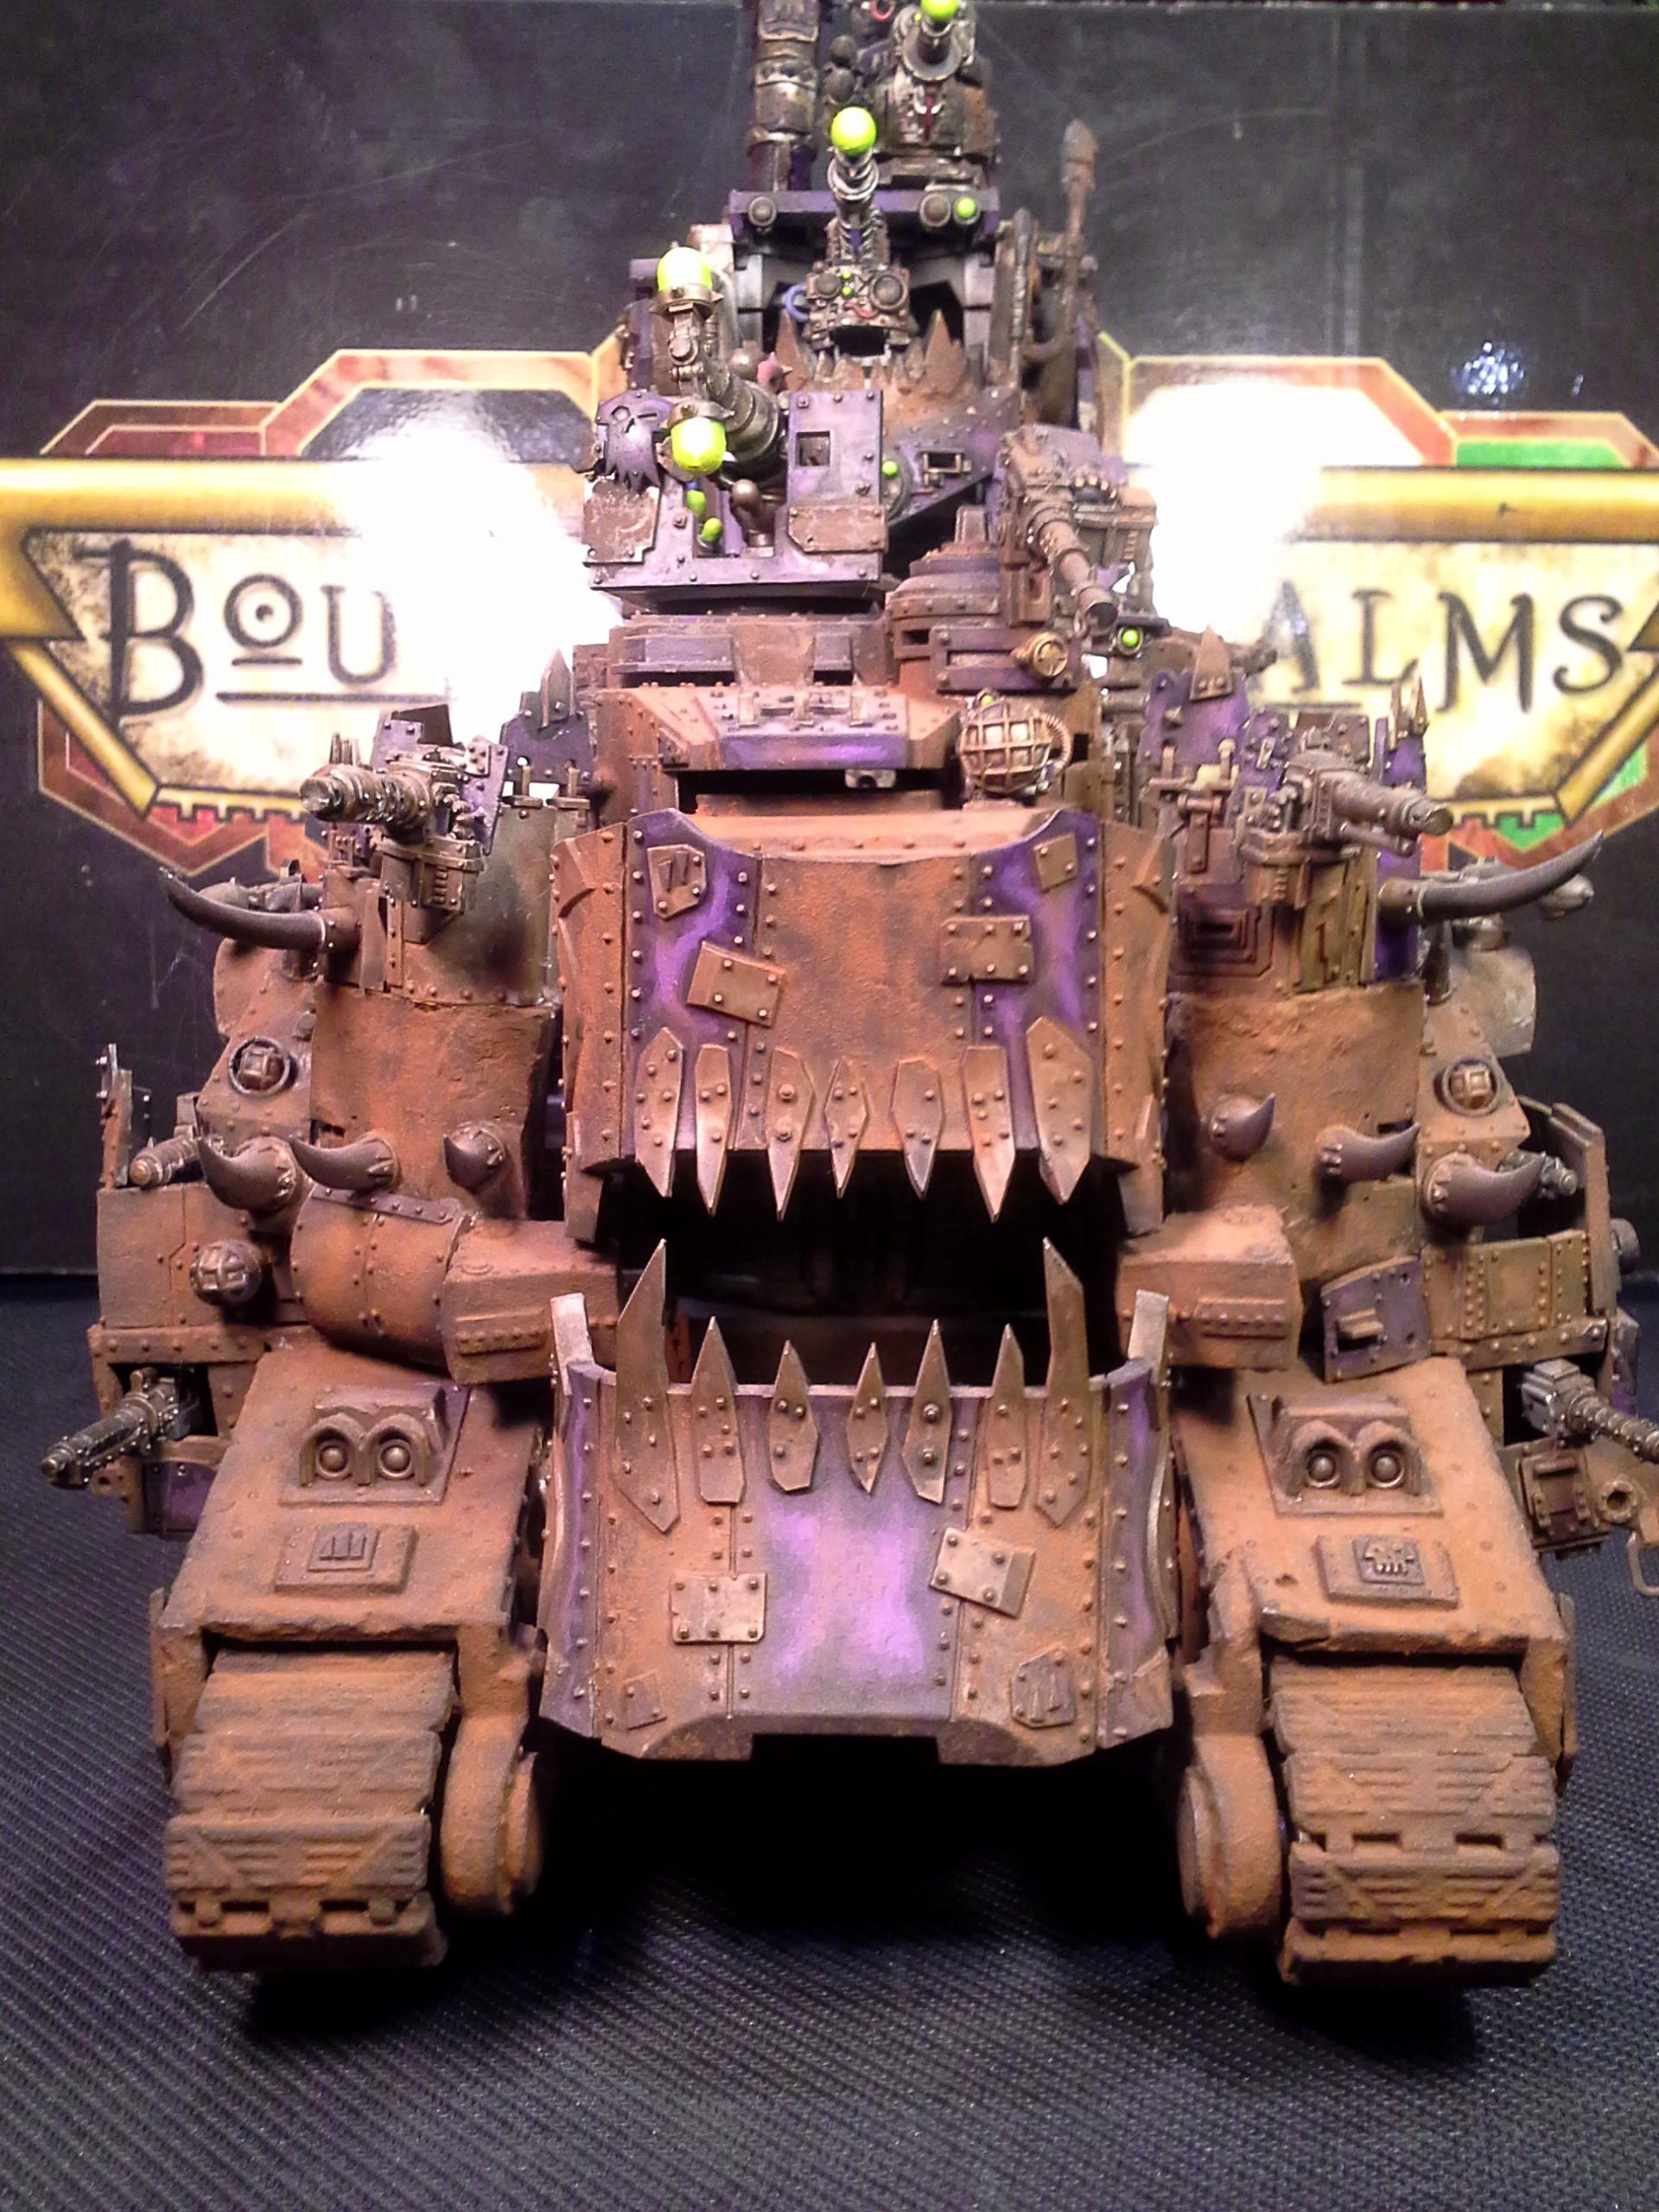 Baneblade, Battle Fortress, Battlewagon, Conversion, Custom, Draw Bridge, Lord Of War, Mad Max, Mekboy, Object Source Lighting, Orks, Rust, Super-heavy, Turret